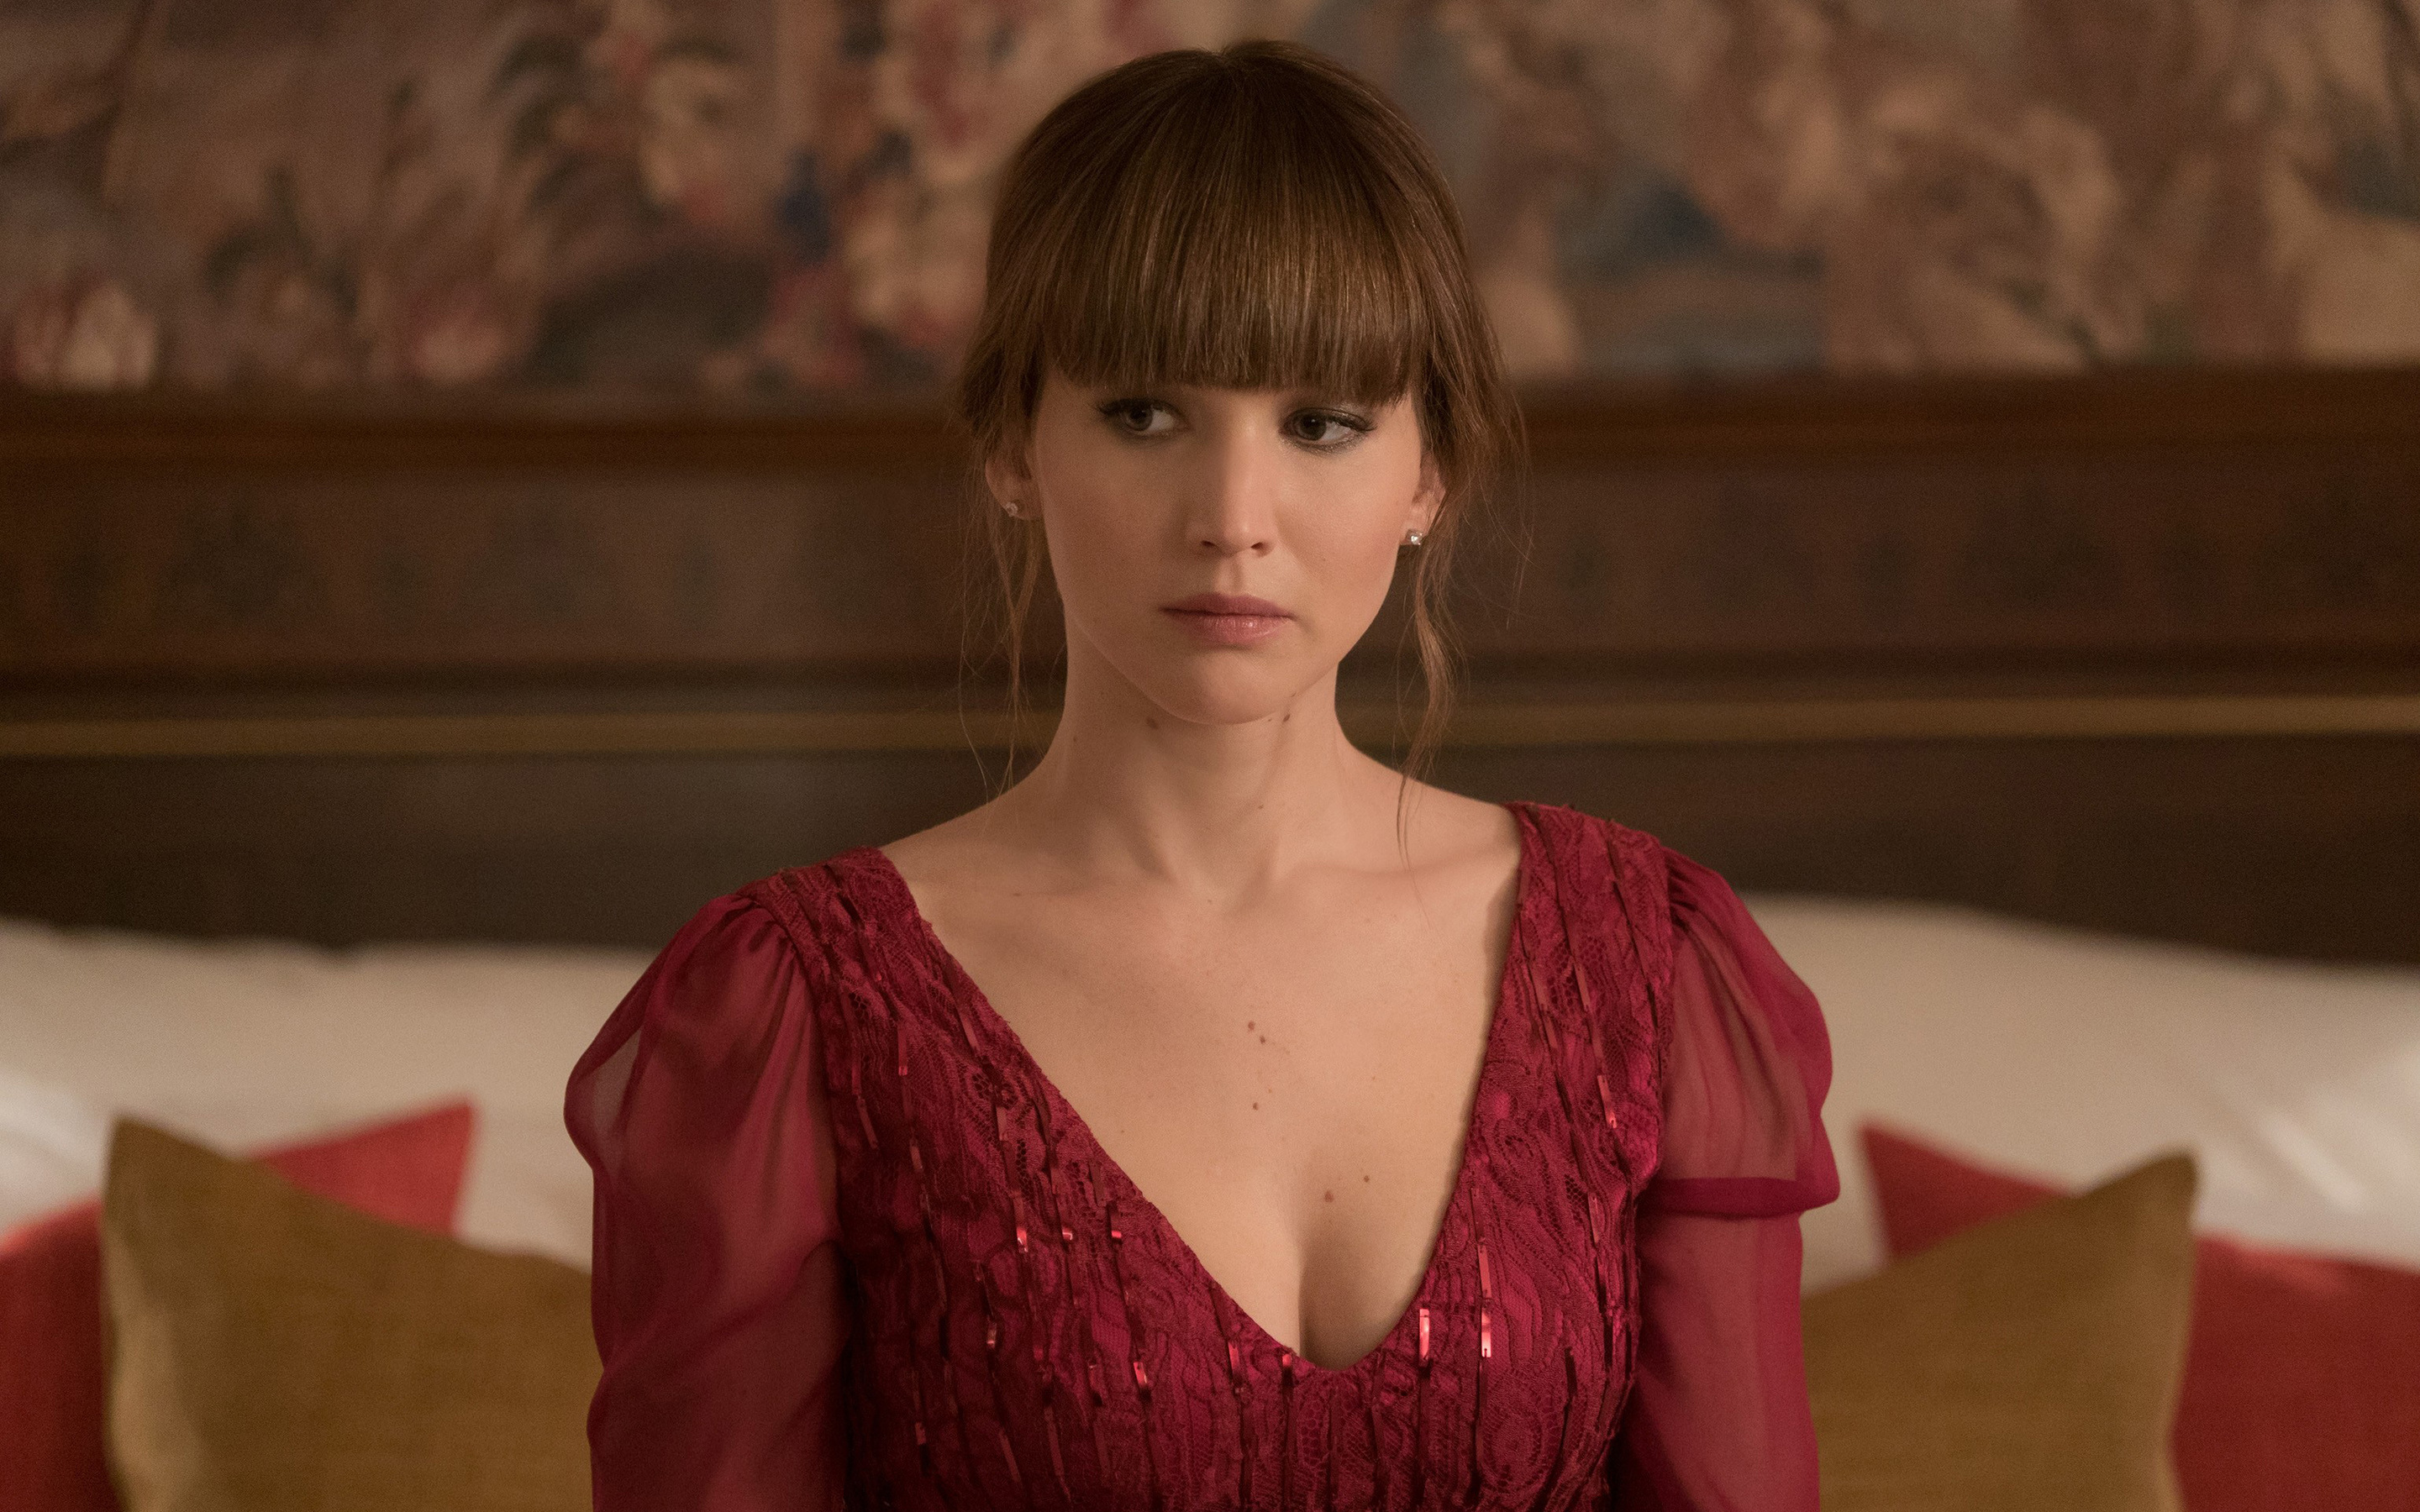 jennifer-lawrence-in-red-sparrow-movie-4k-7v.jpg